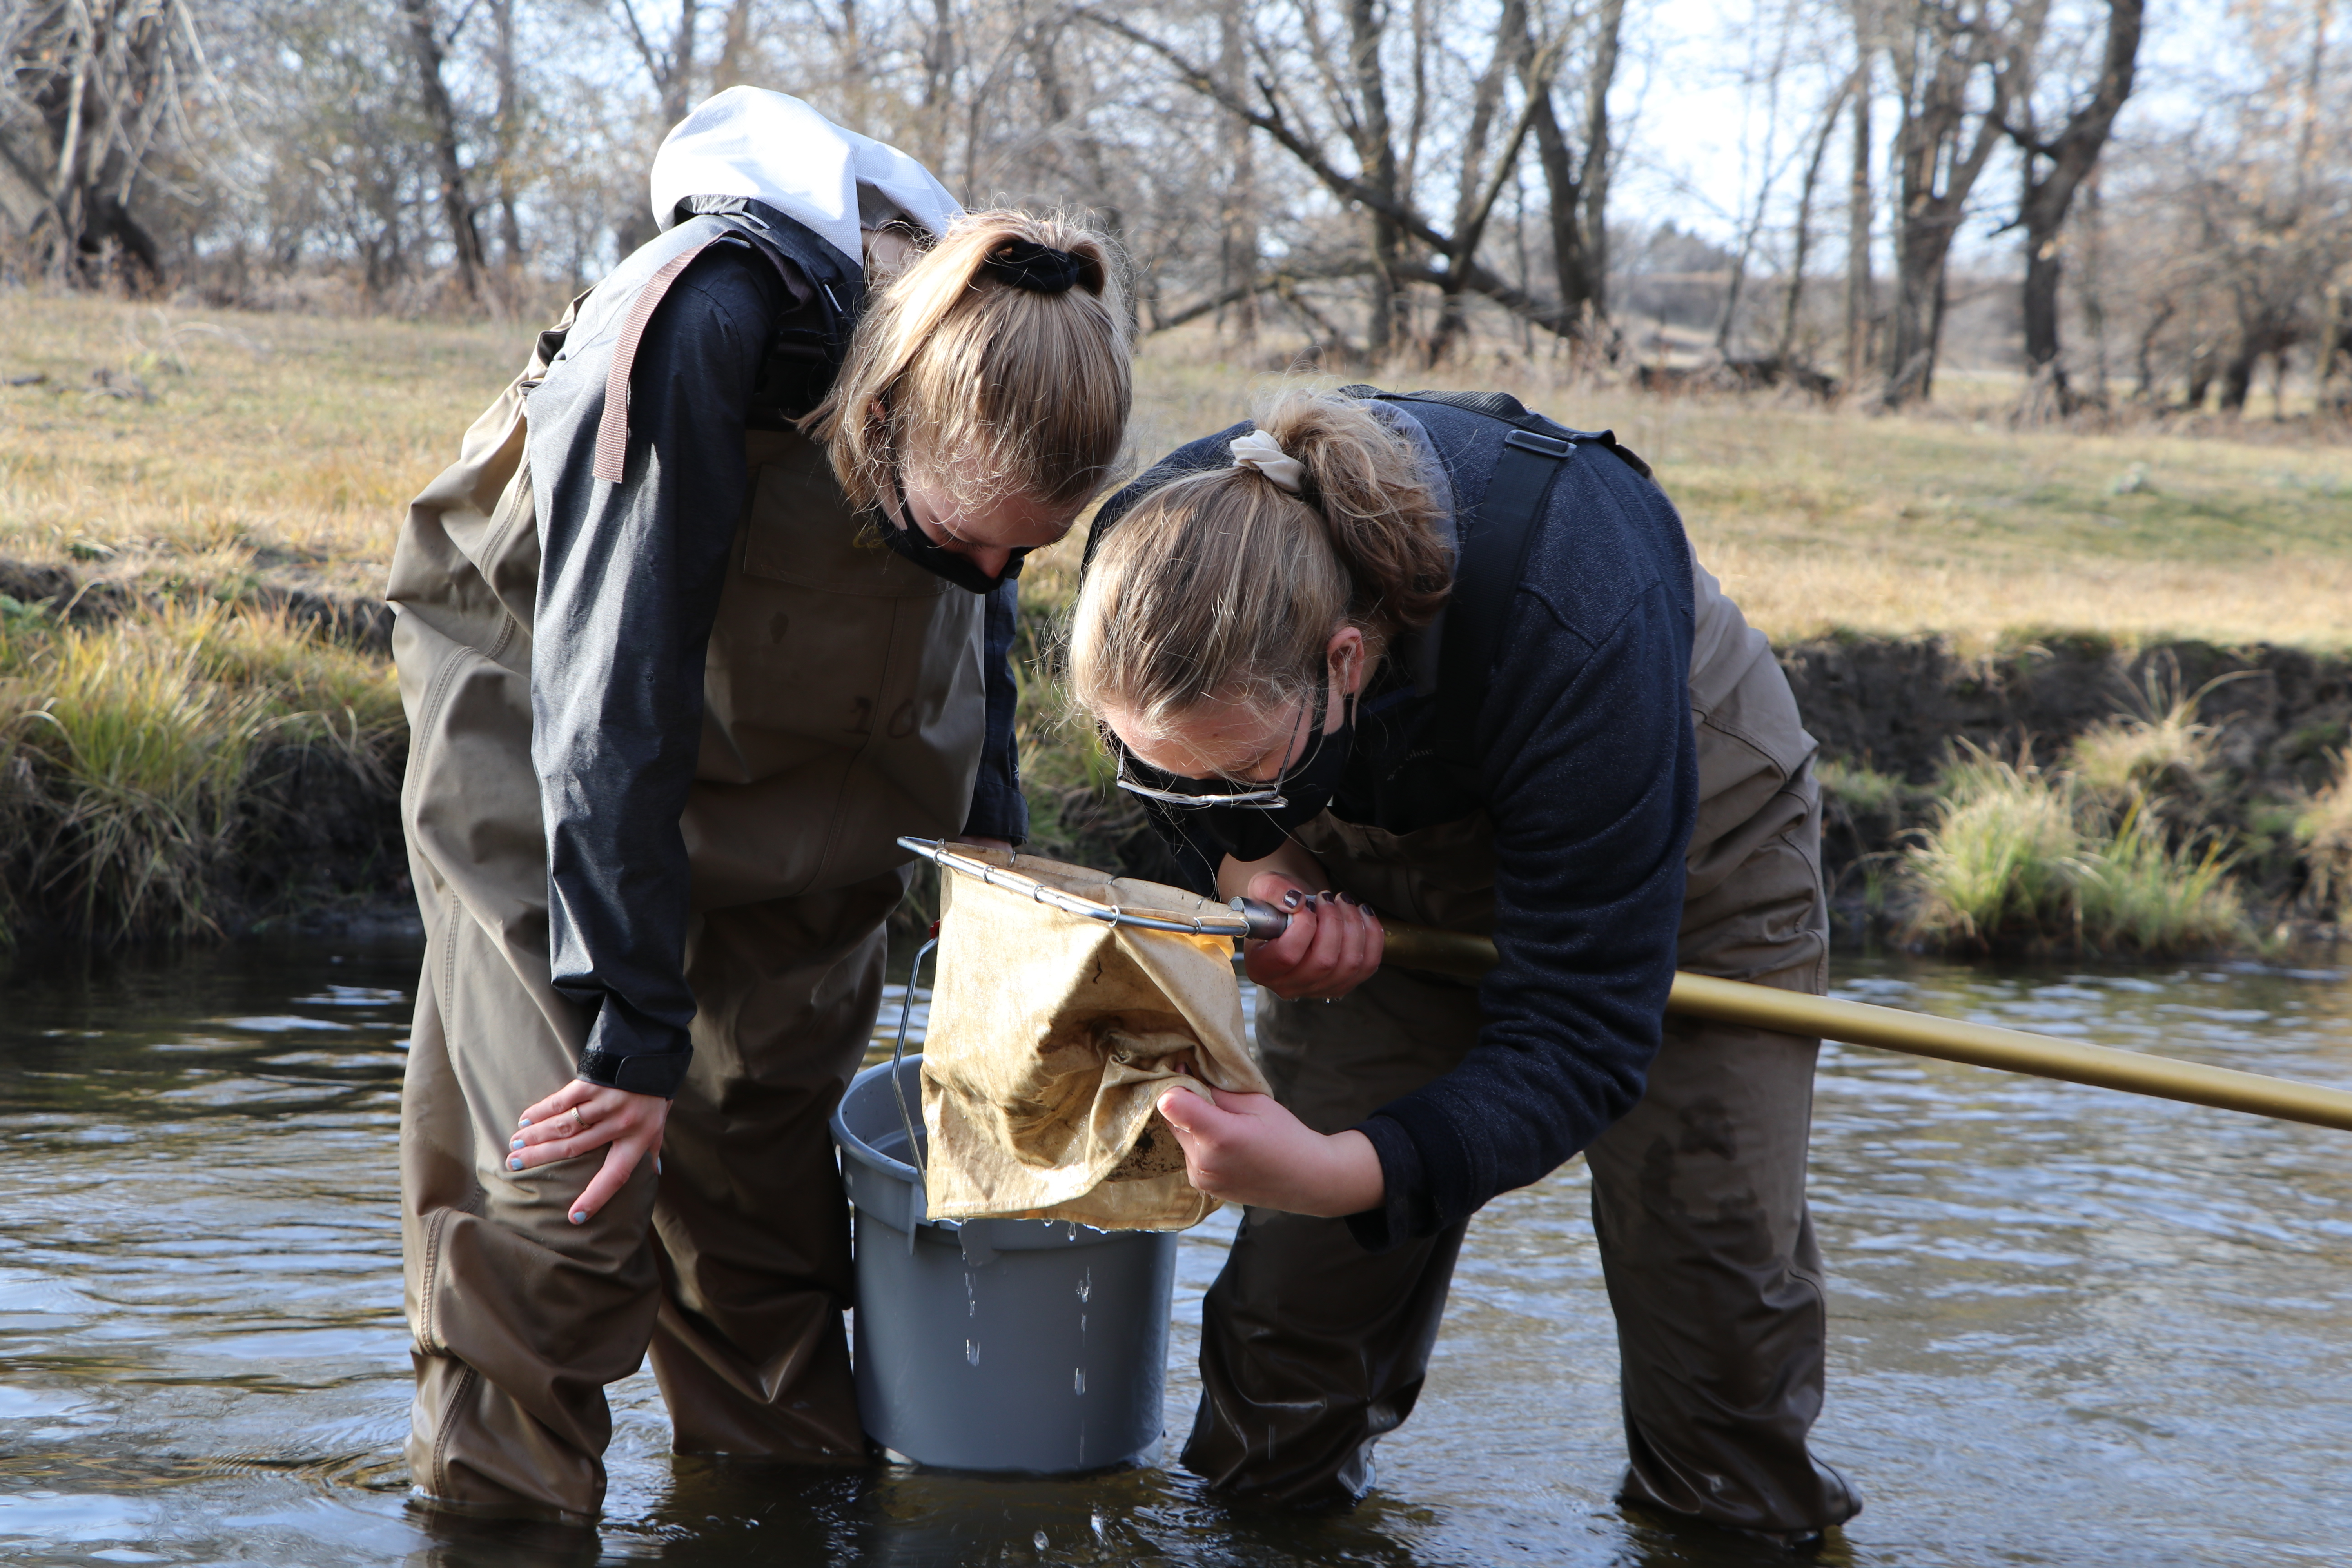 Two high-school aged students wearing masks and chest waders bend over a kick net to examine its contents.